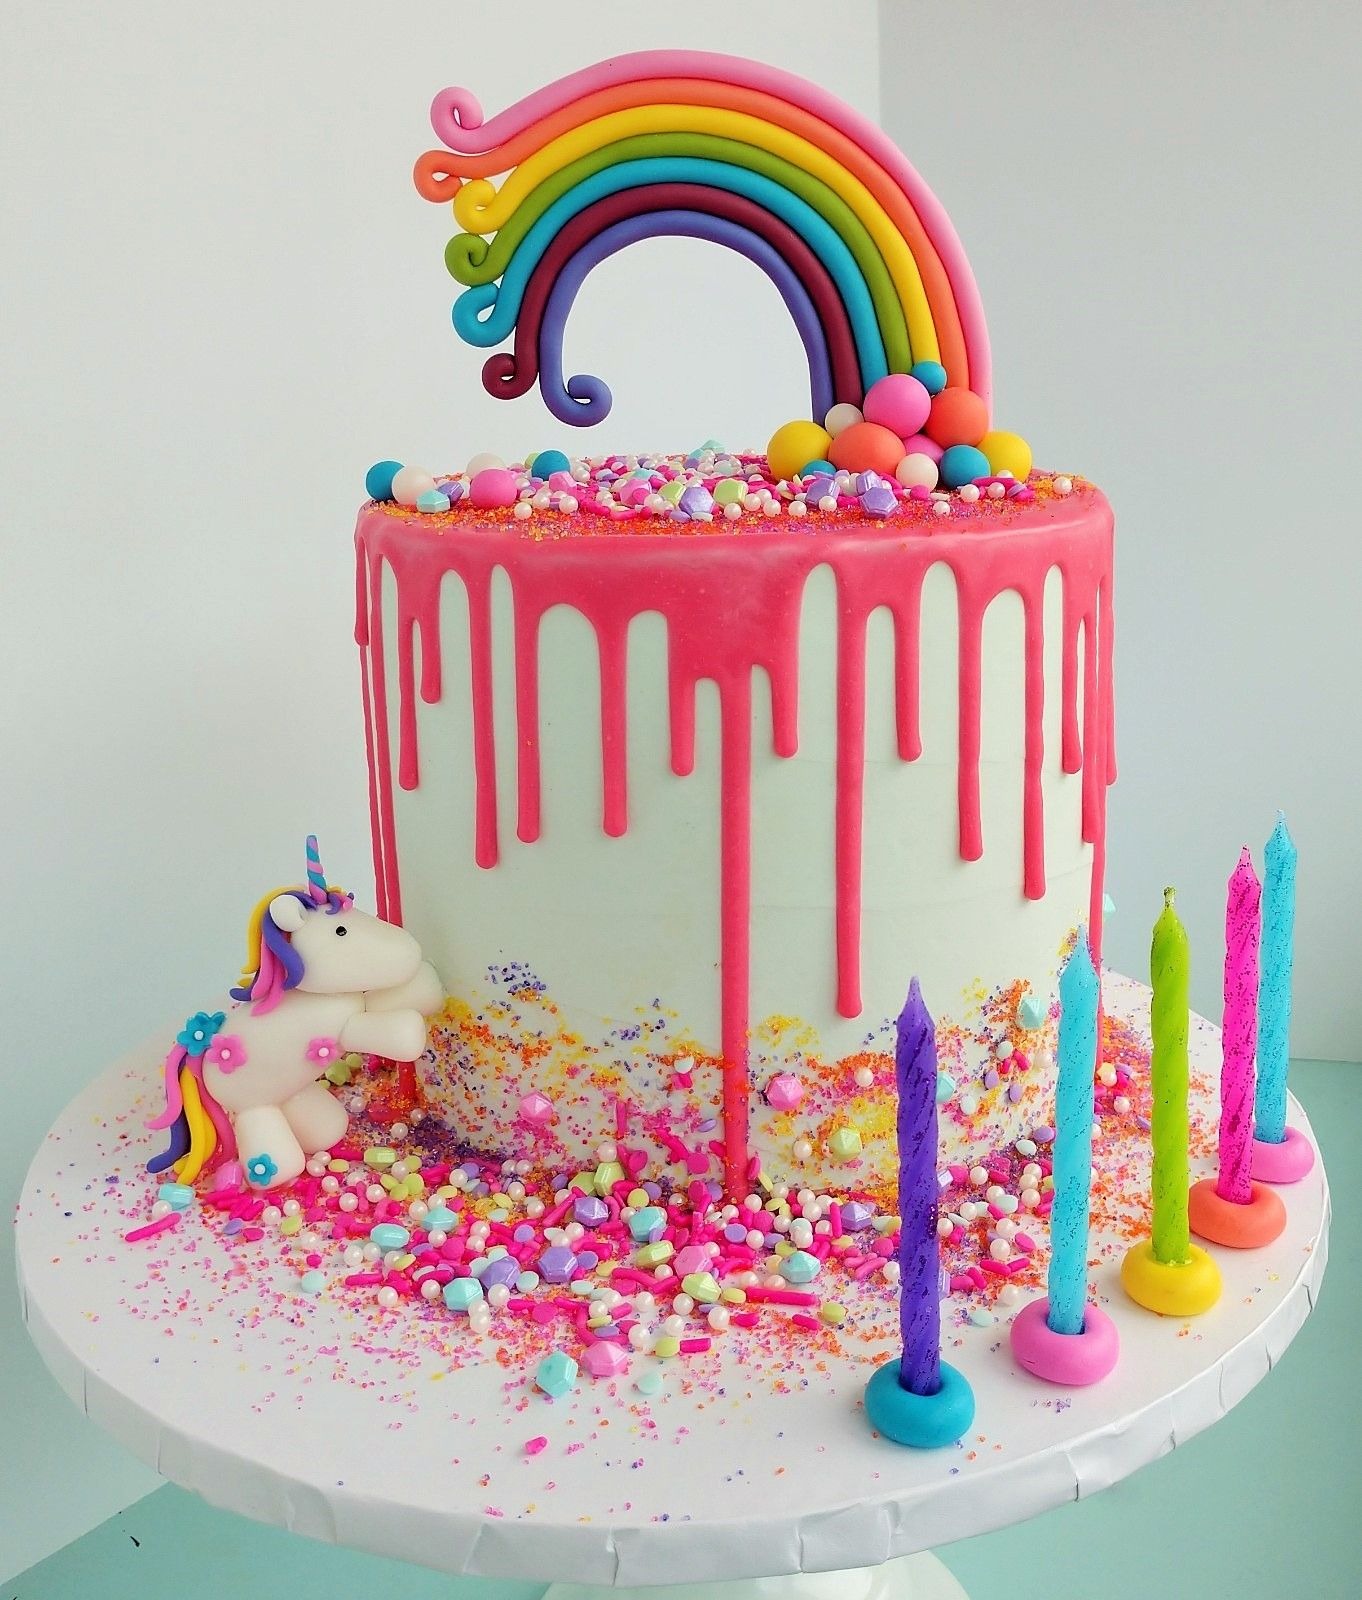 Swell Rainbows And Unicorns Cake Rainbow Birthday Cake Unicorn Funny Birthday Cards Online Elaedamsfinfo